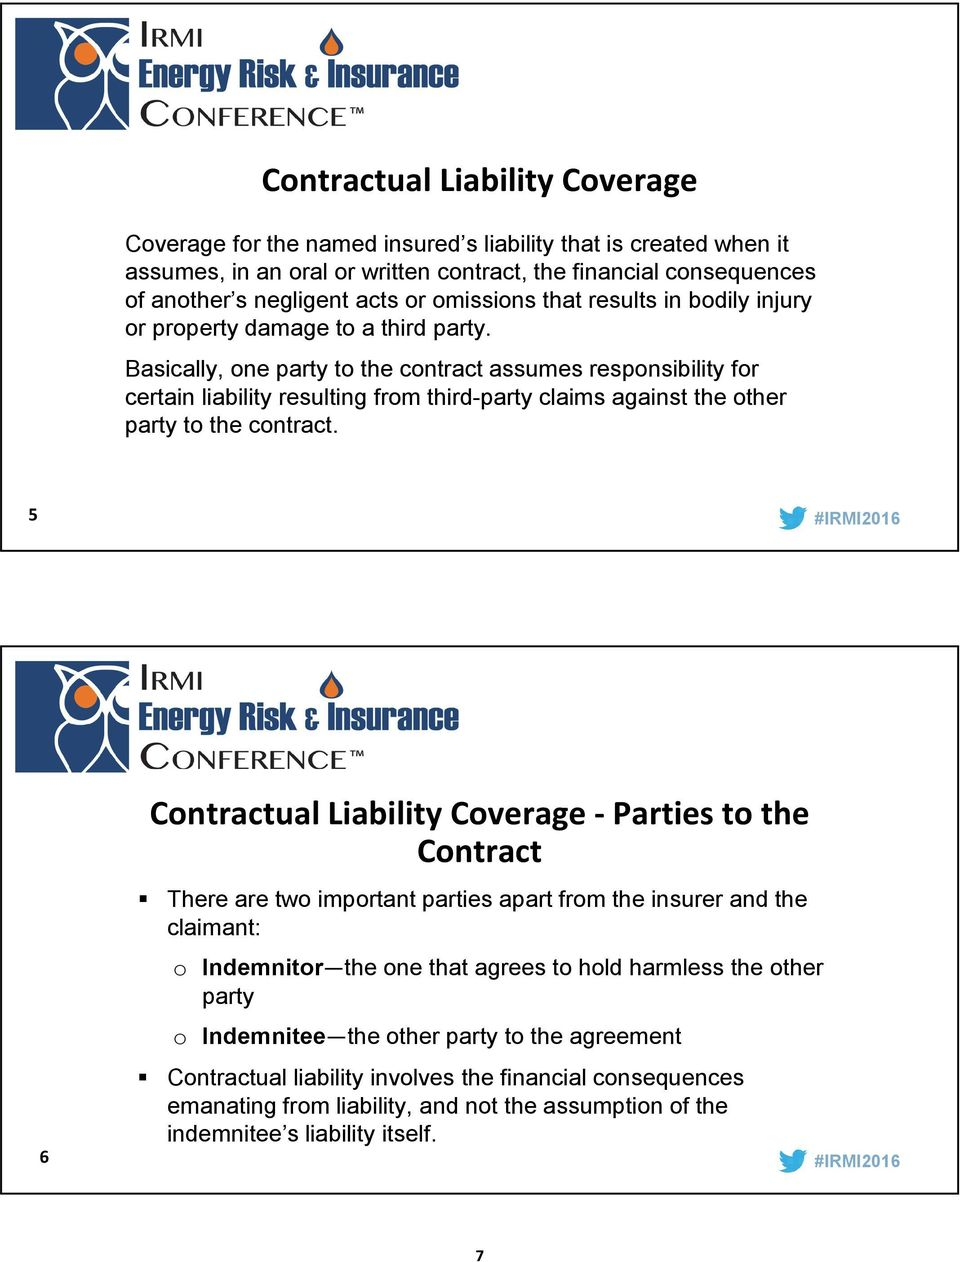 Basically, one party to the contract assumes responsibility for certain liability resulting from third-party claims against the other party to the contract.